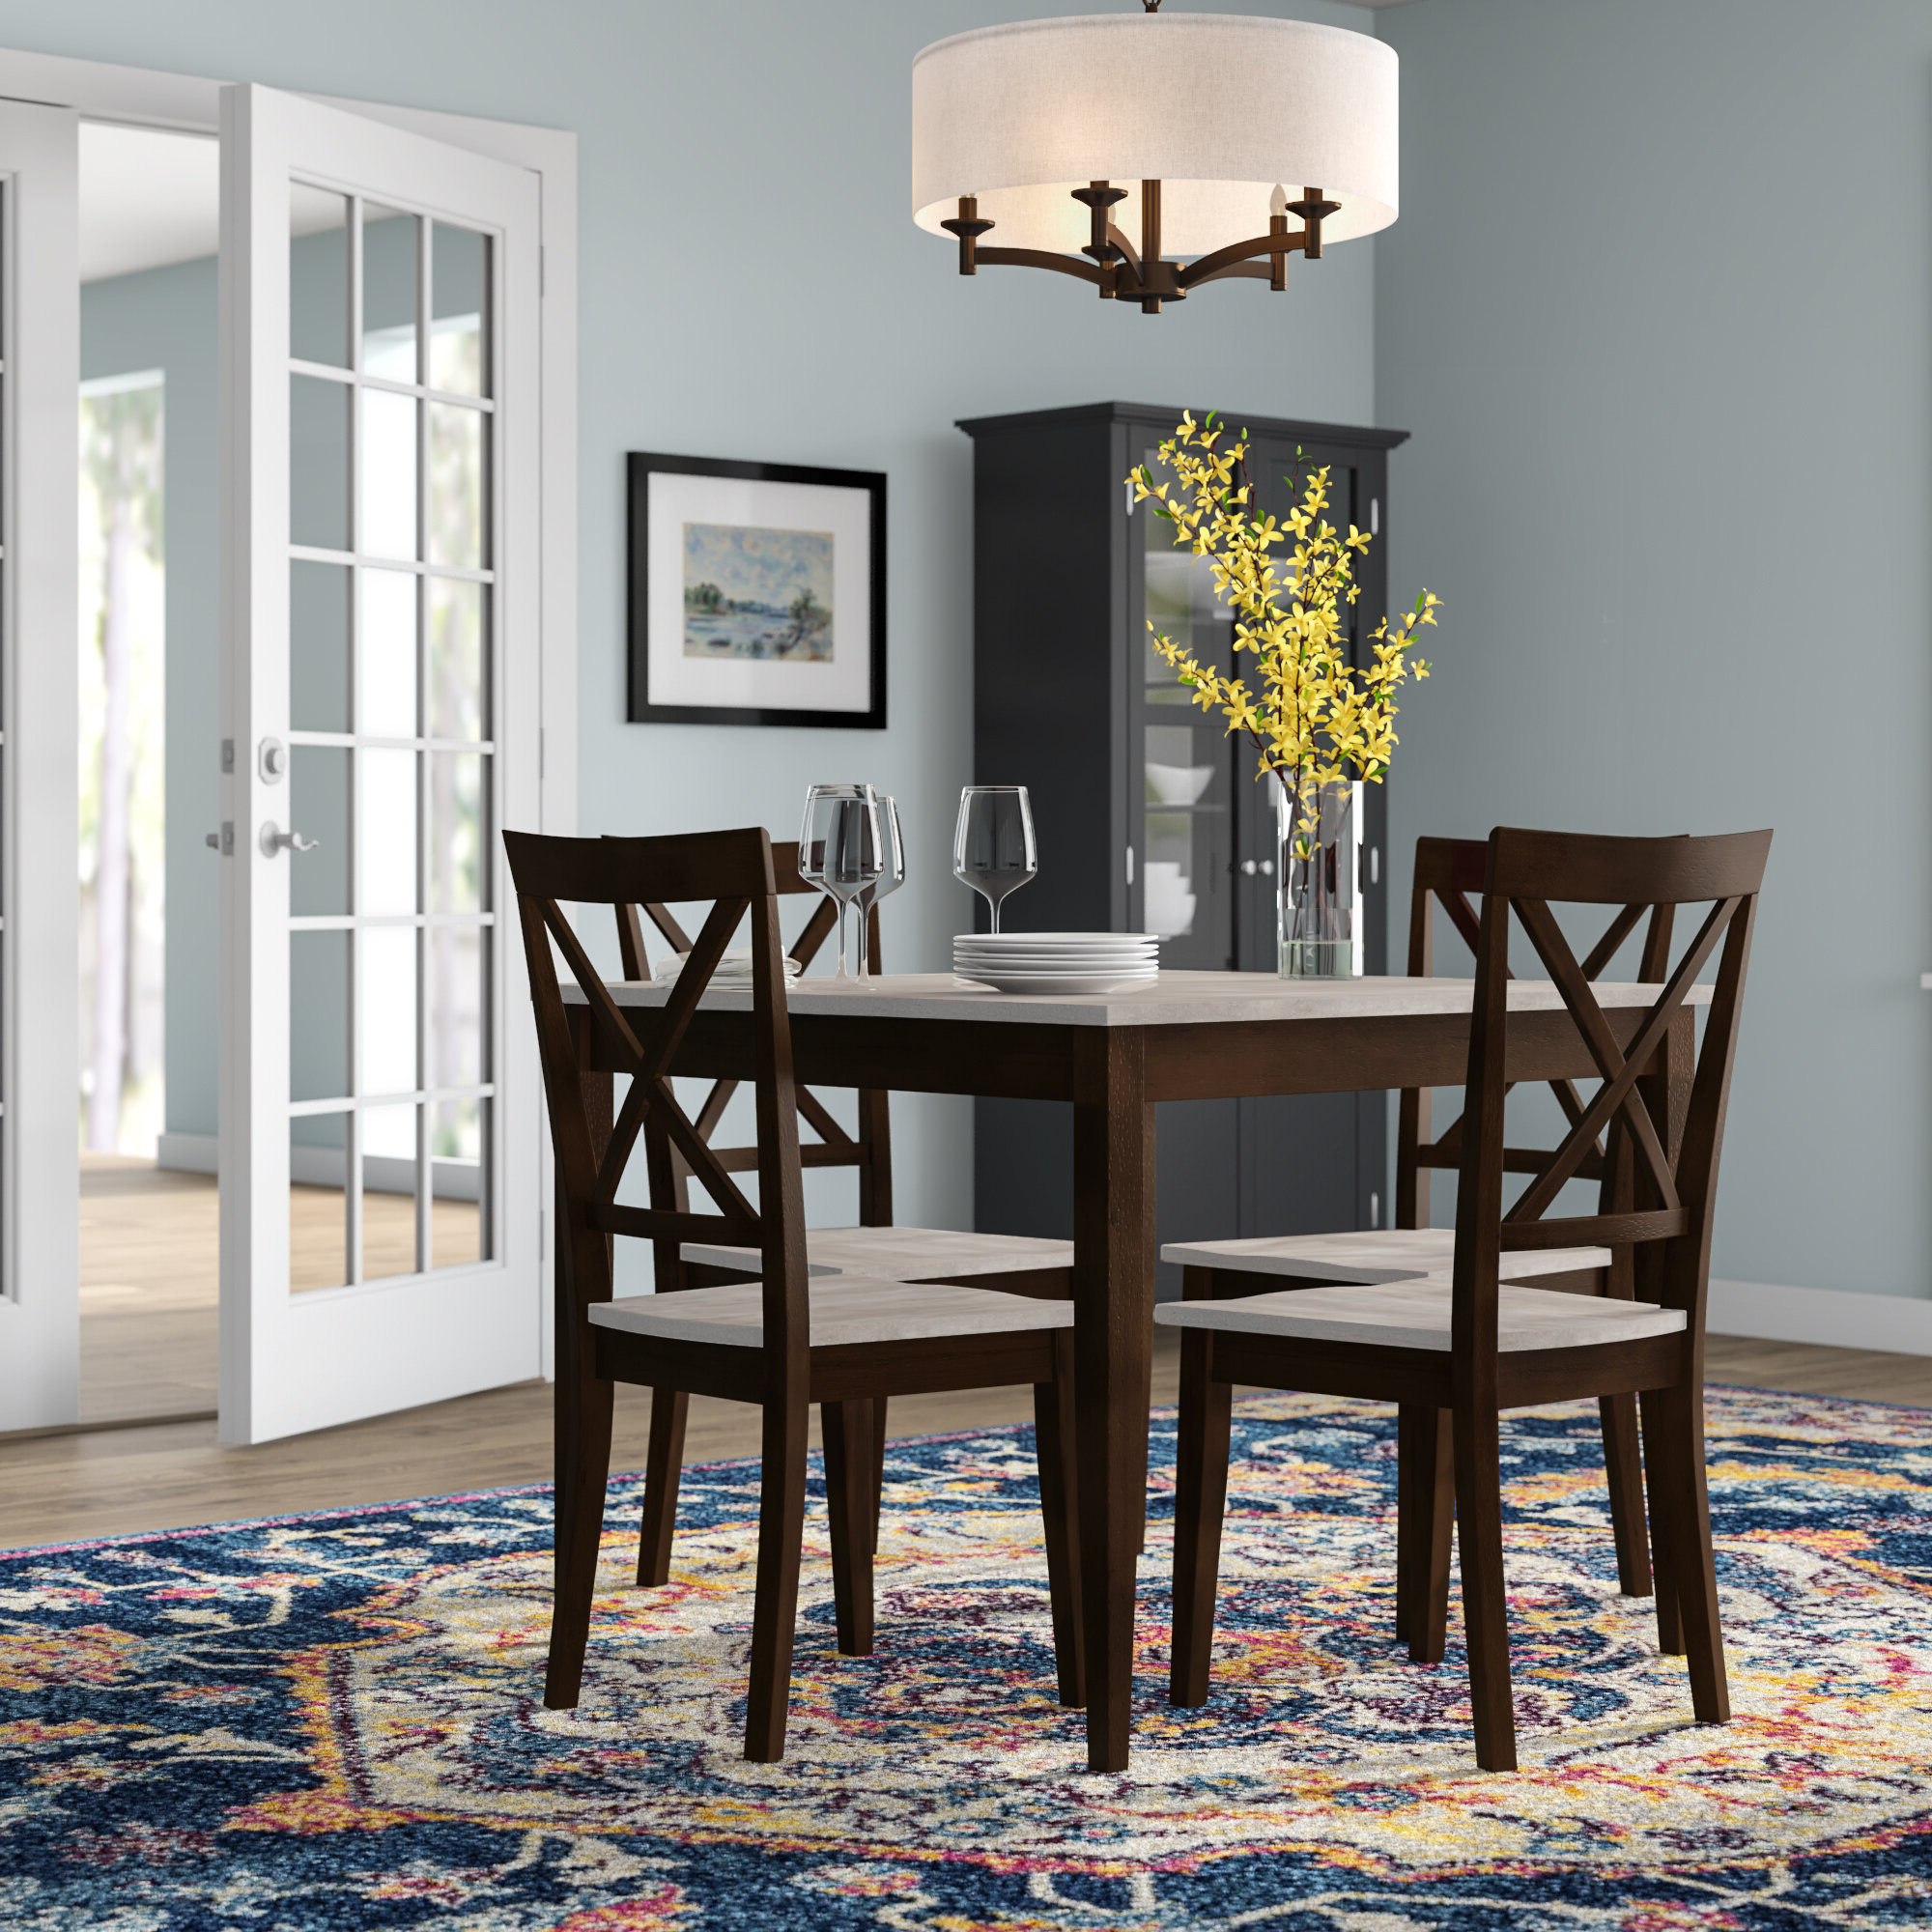 Wayfair For West Hill Family Table 3 Piece Dining Sets (View 17 of 25)